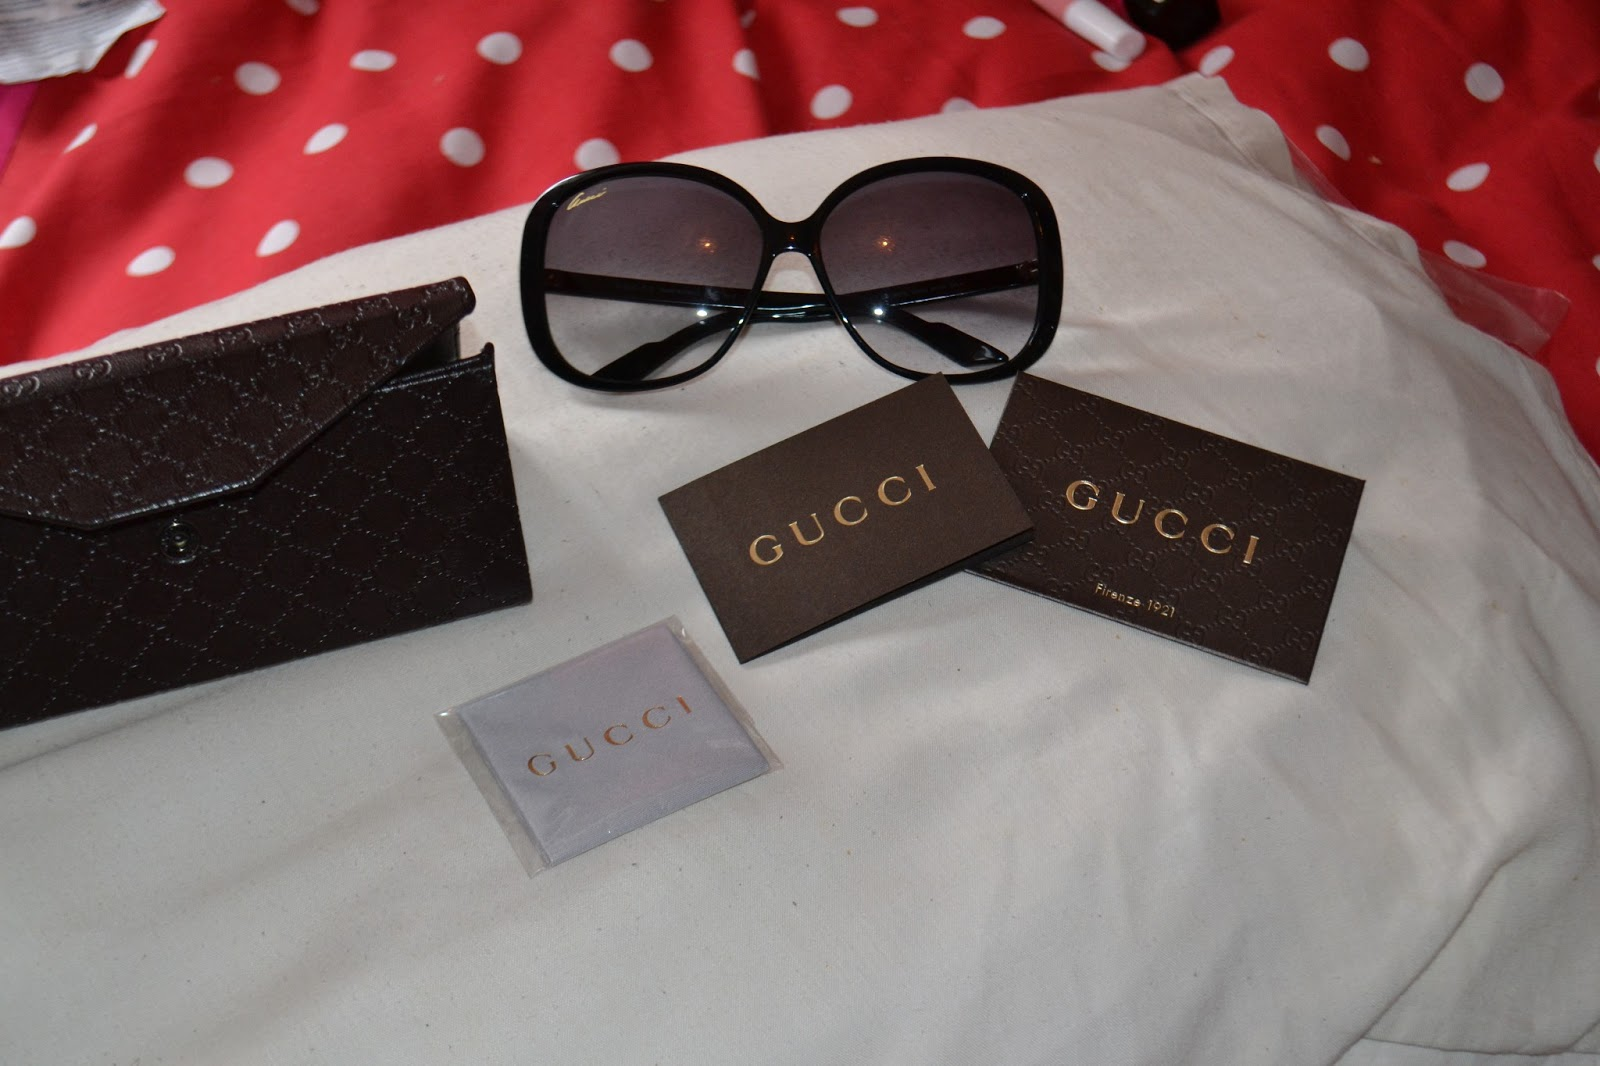 2875d1dcbe6e8 Forevermissvanity - A UK Lifestyle Blogger   Hey there Gucci Girl